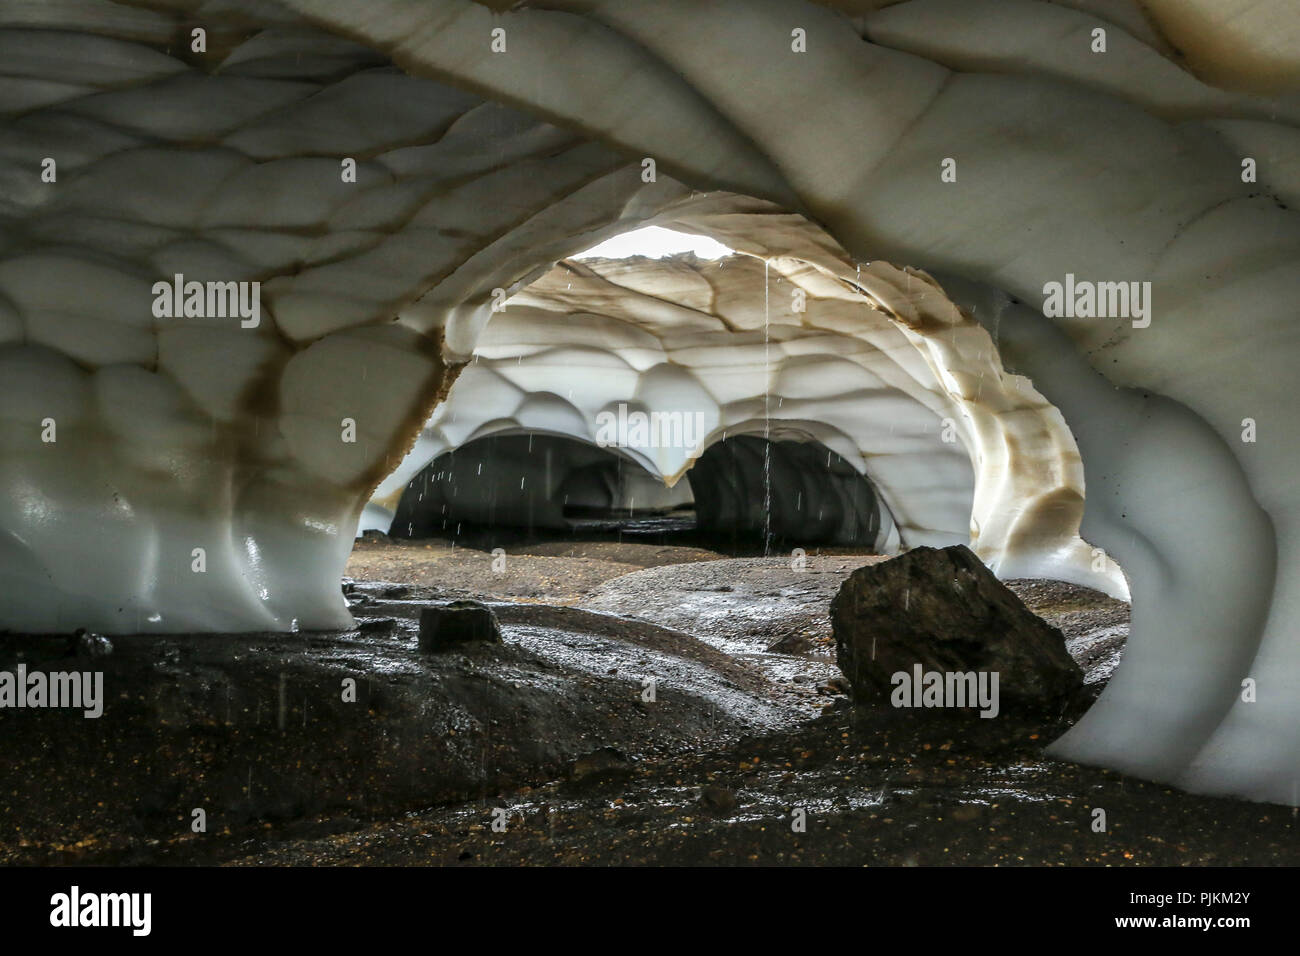 Iceland, snow cave washed by the stream, water flowing from the ceiling - Stock Image